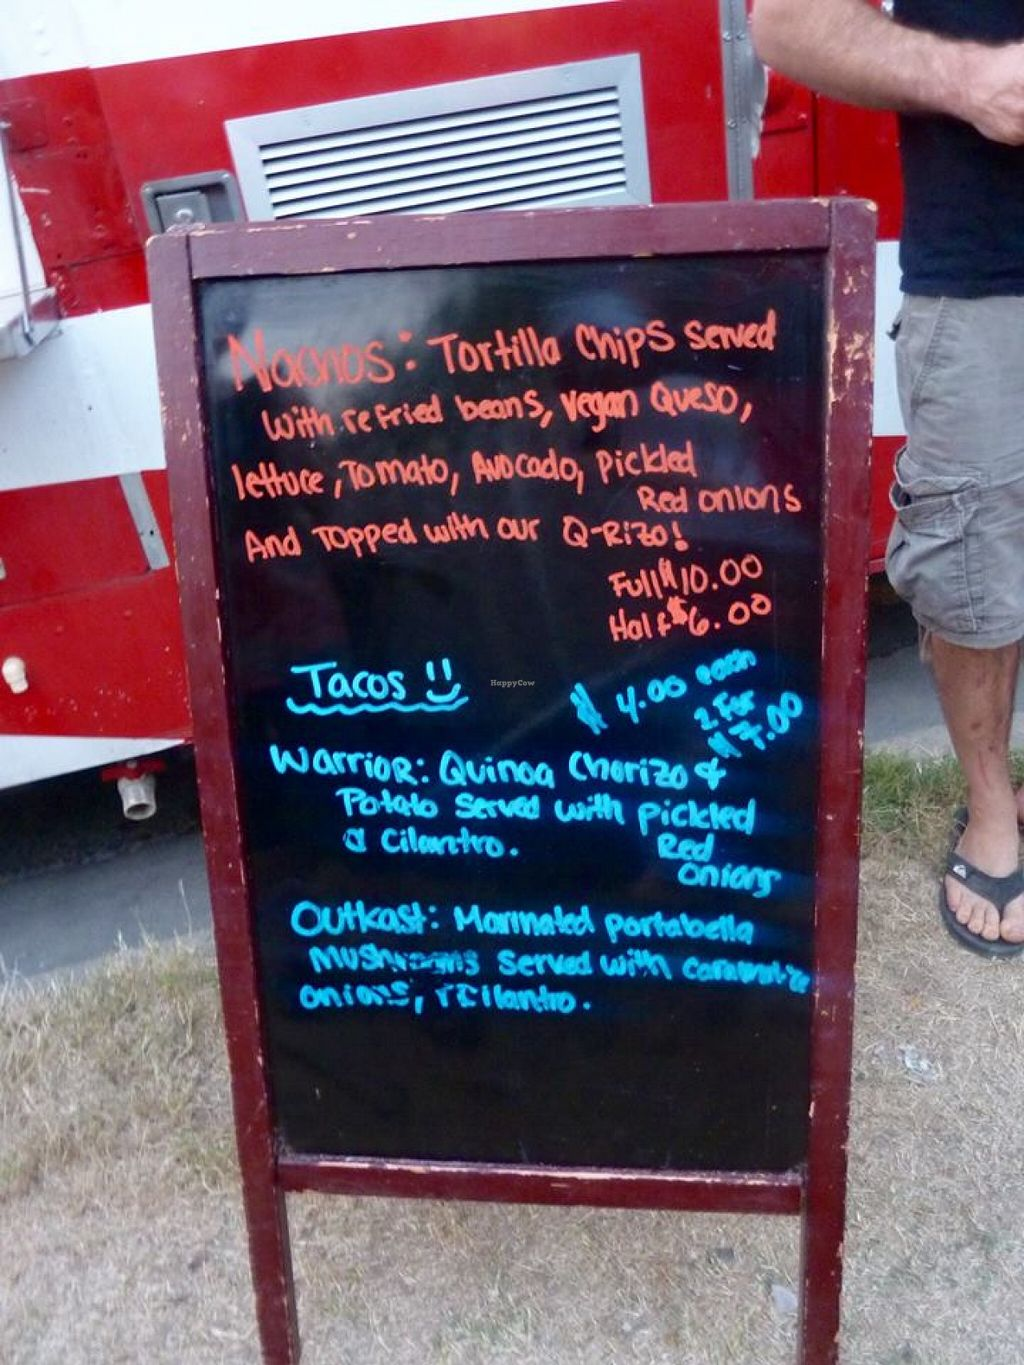 """Photo of Cool Beans - Food Truck  by <a href=""""/members/profile/MizzB"""">MizzB</a> <br/>Oktoberfest menu <br/> December 16, 2015  - <a href='/contact/abuse/image/56221/128763'>Report</a>"""